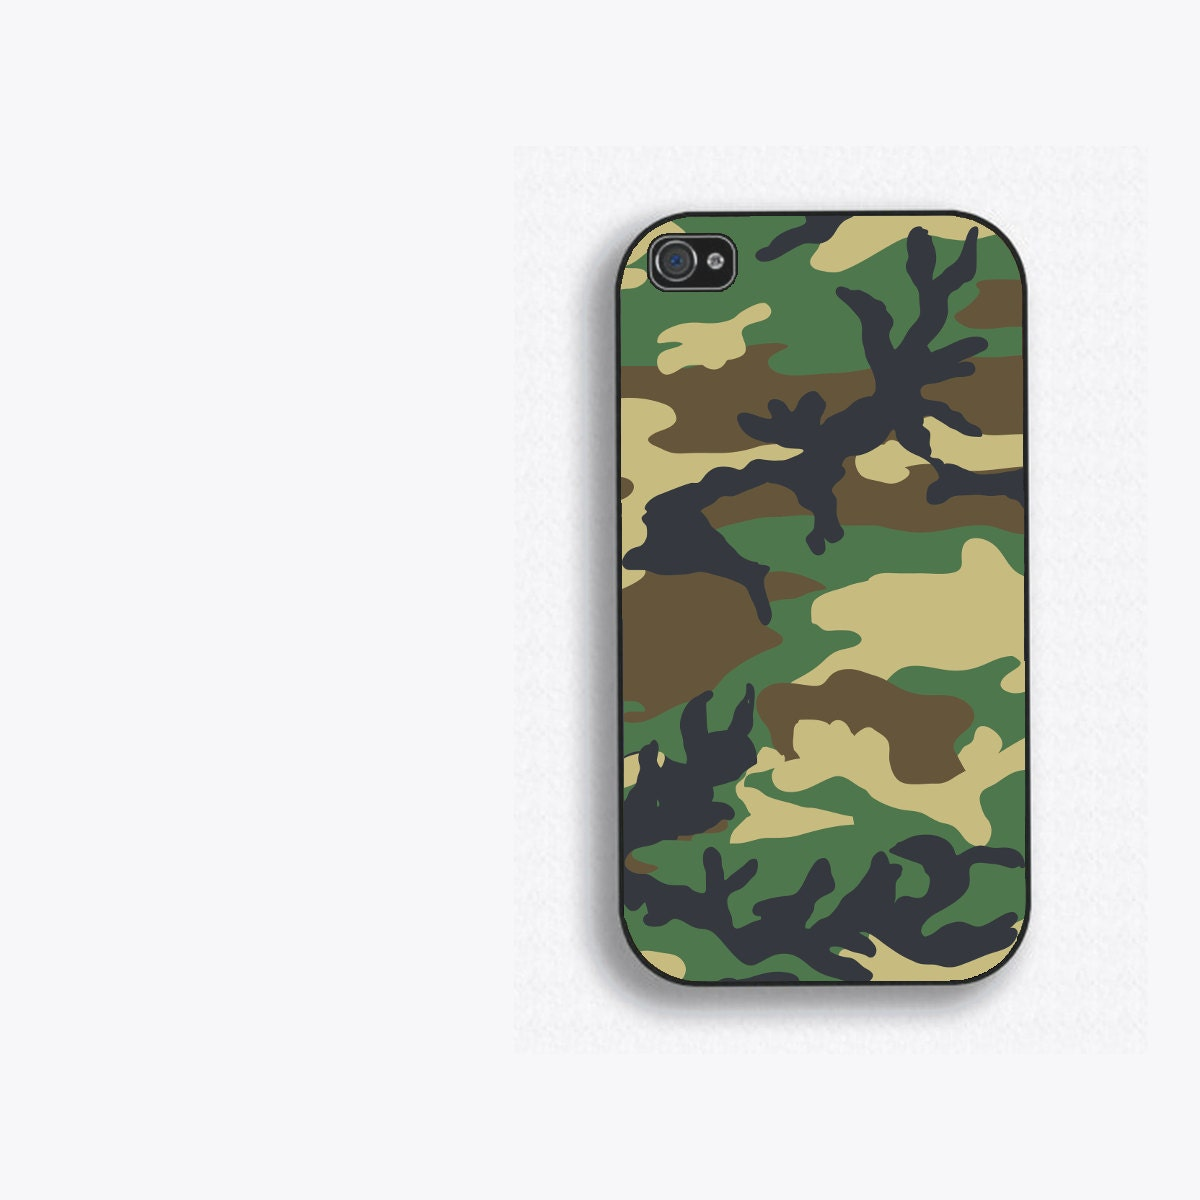 camo iphone 5 case woodland camo phone for iphone 5 iphone 4 by humeruswares 6460